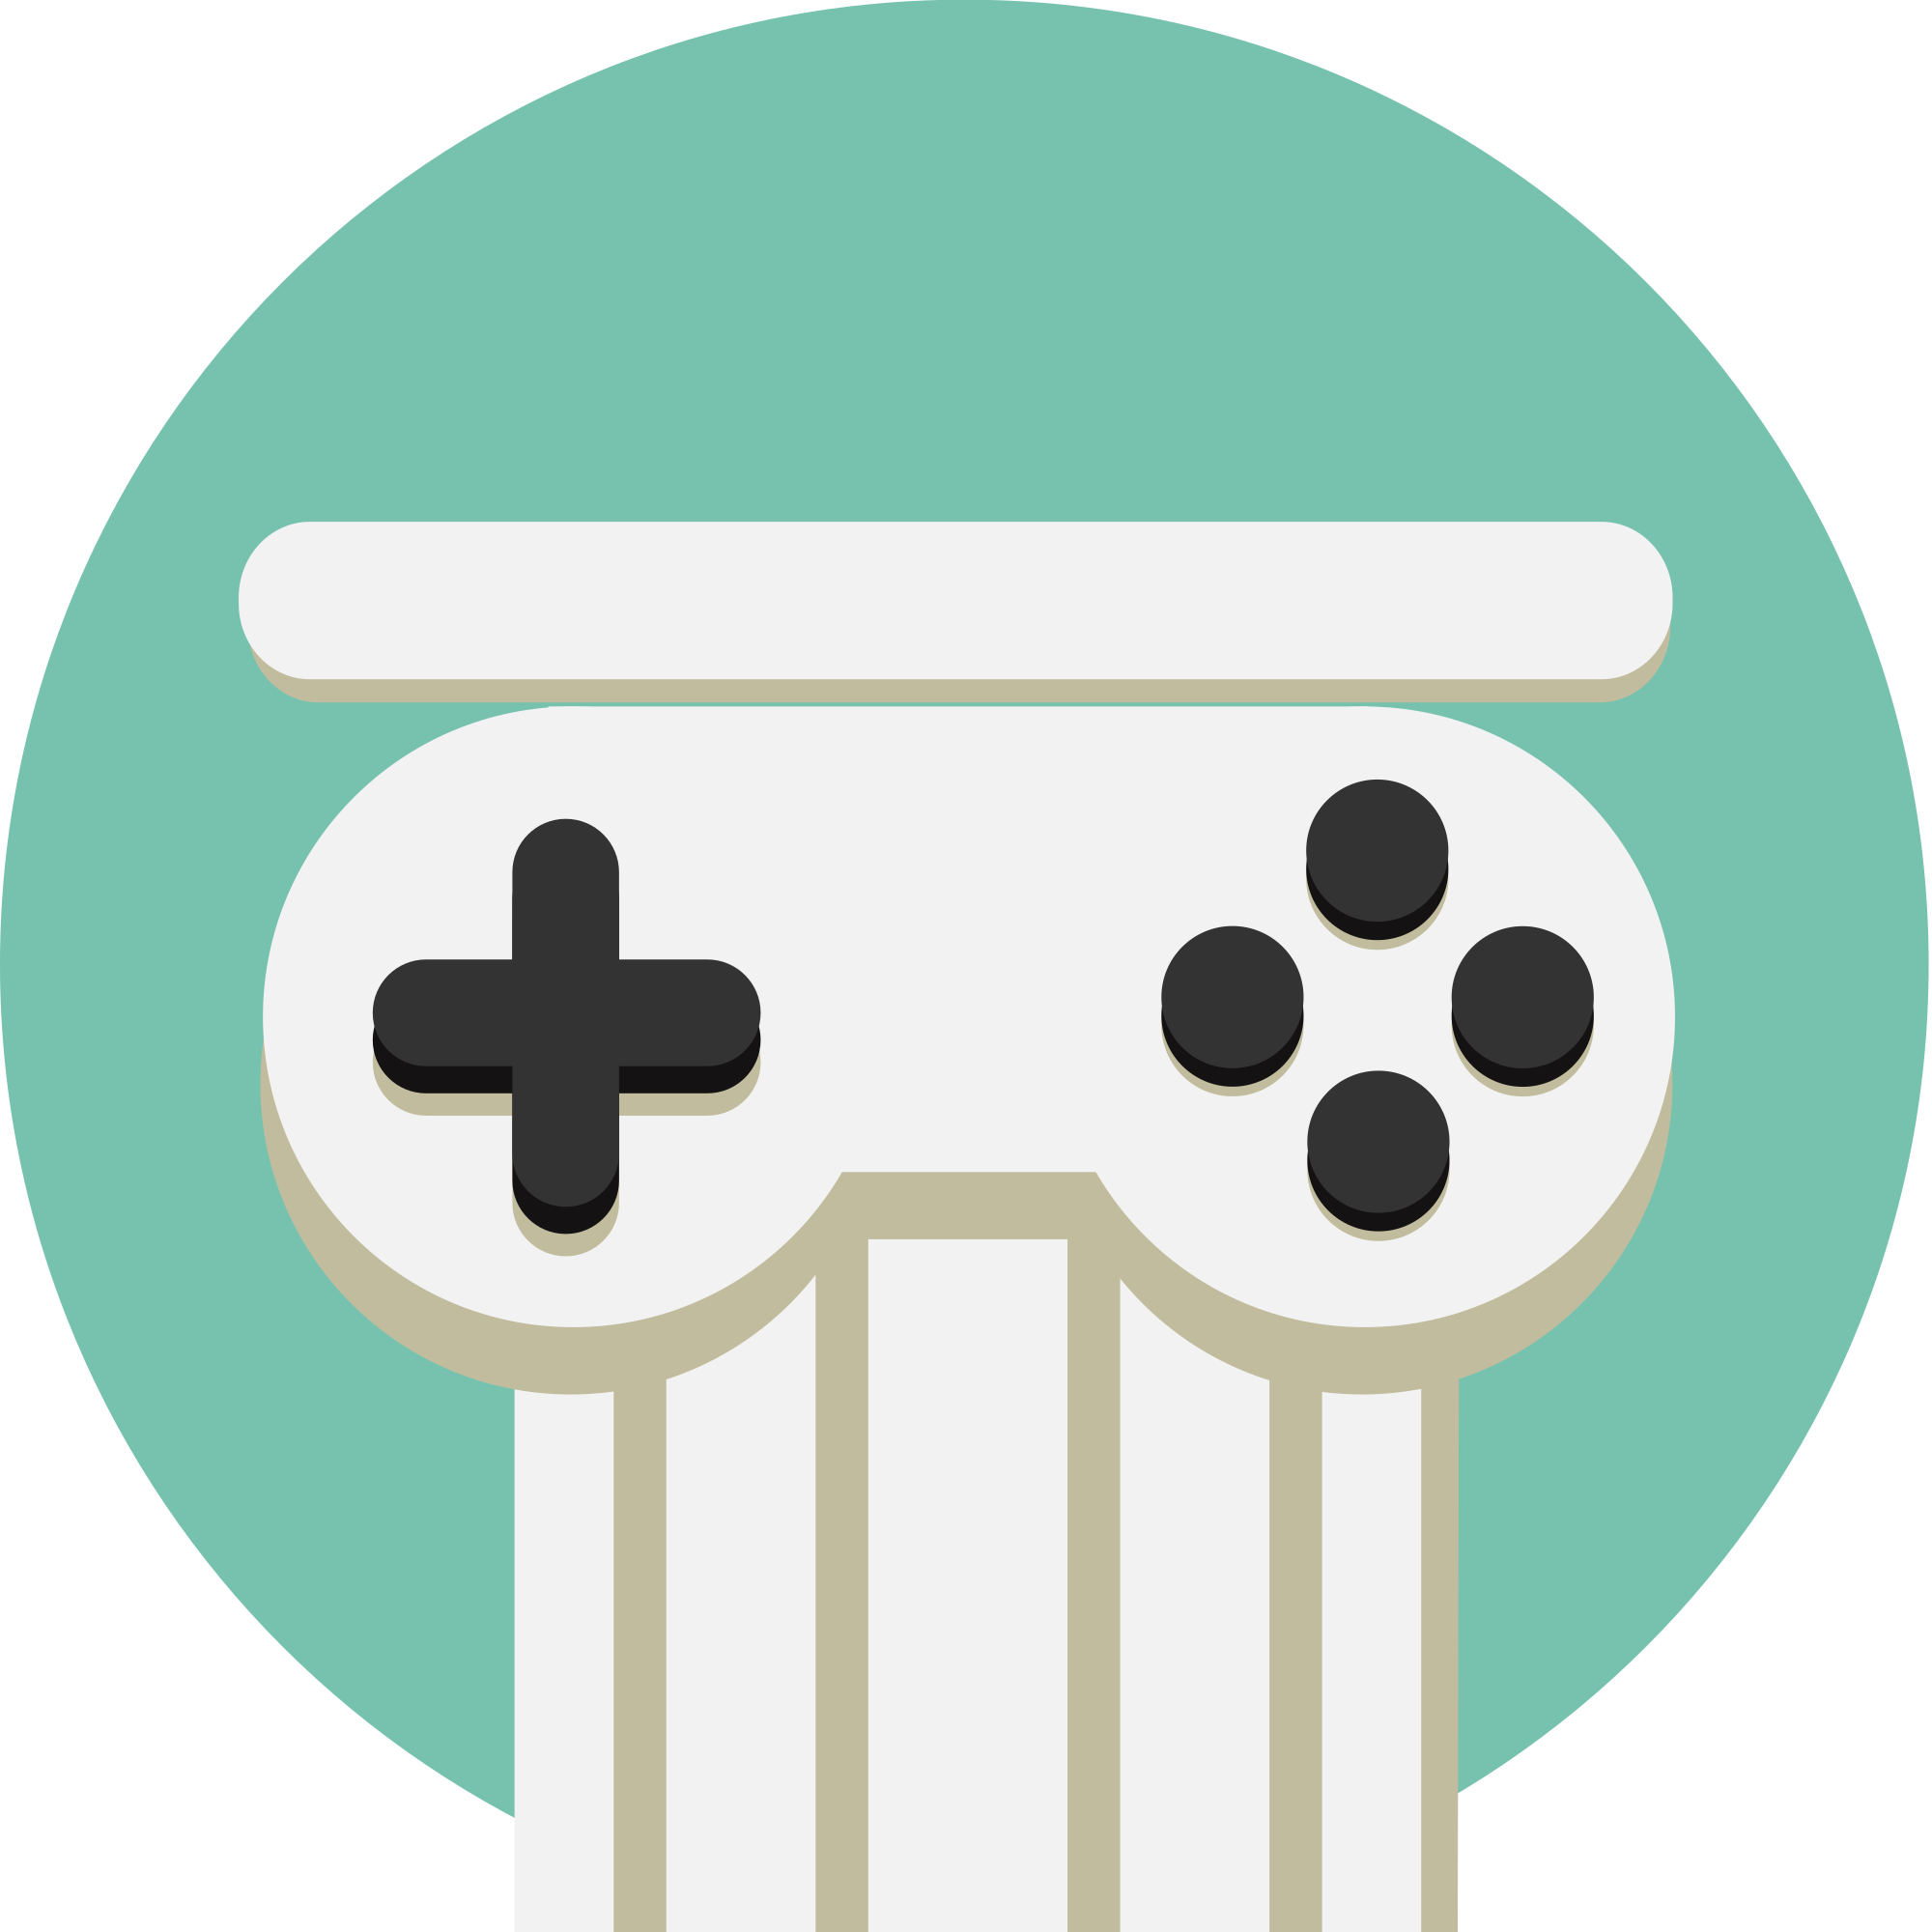 Controller clipart electronic game. File video icon idv